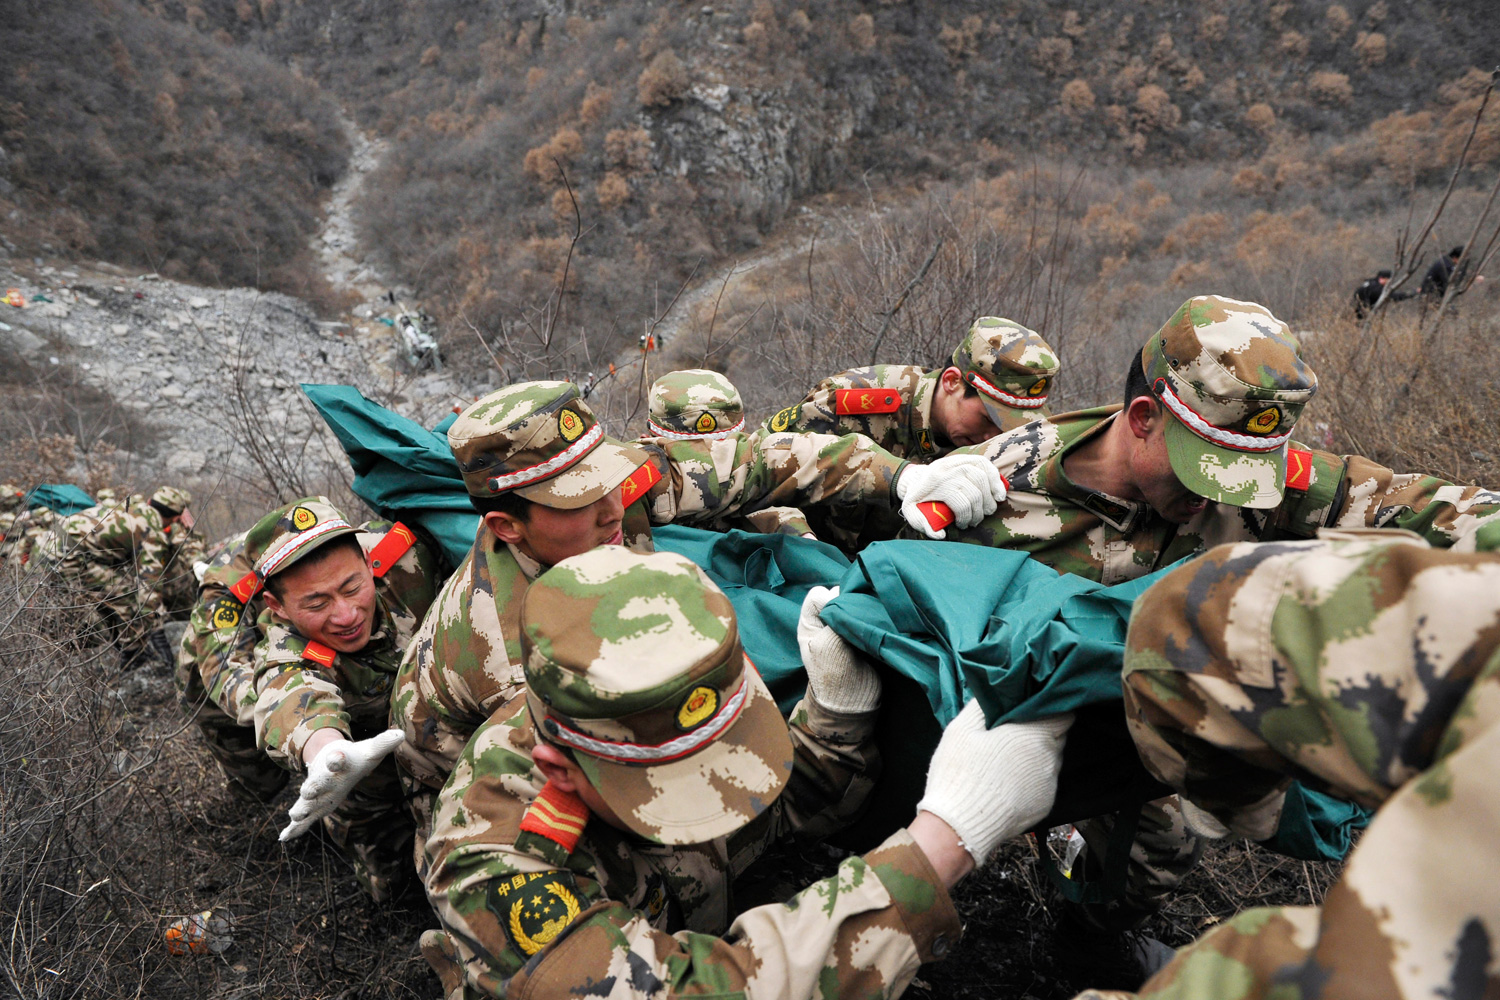 Feb. 25, 2012. Chinese rescuers haul the body of a passenger out of the 50-m (165-ft.) gorge on a stretchers after a bus plunged into a ravine killing 15 tourists and injuring 19 others, near Jincheng in Shanxi province.